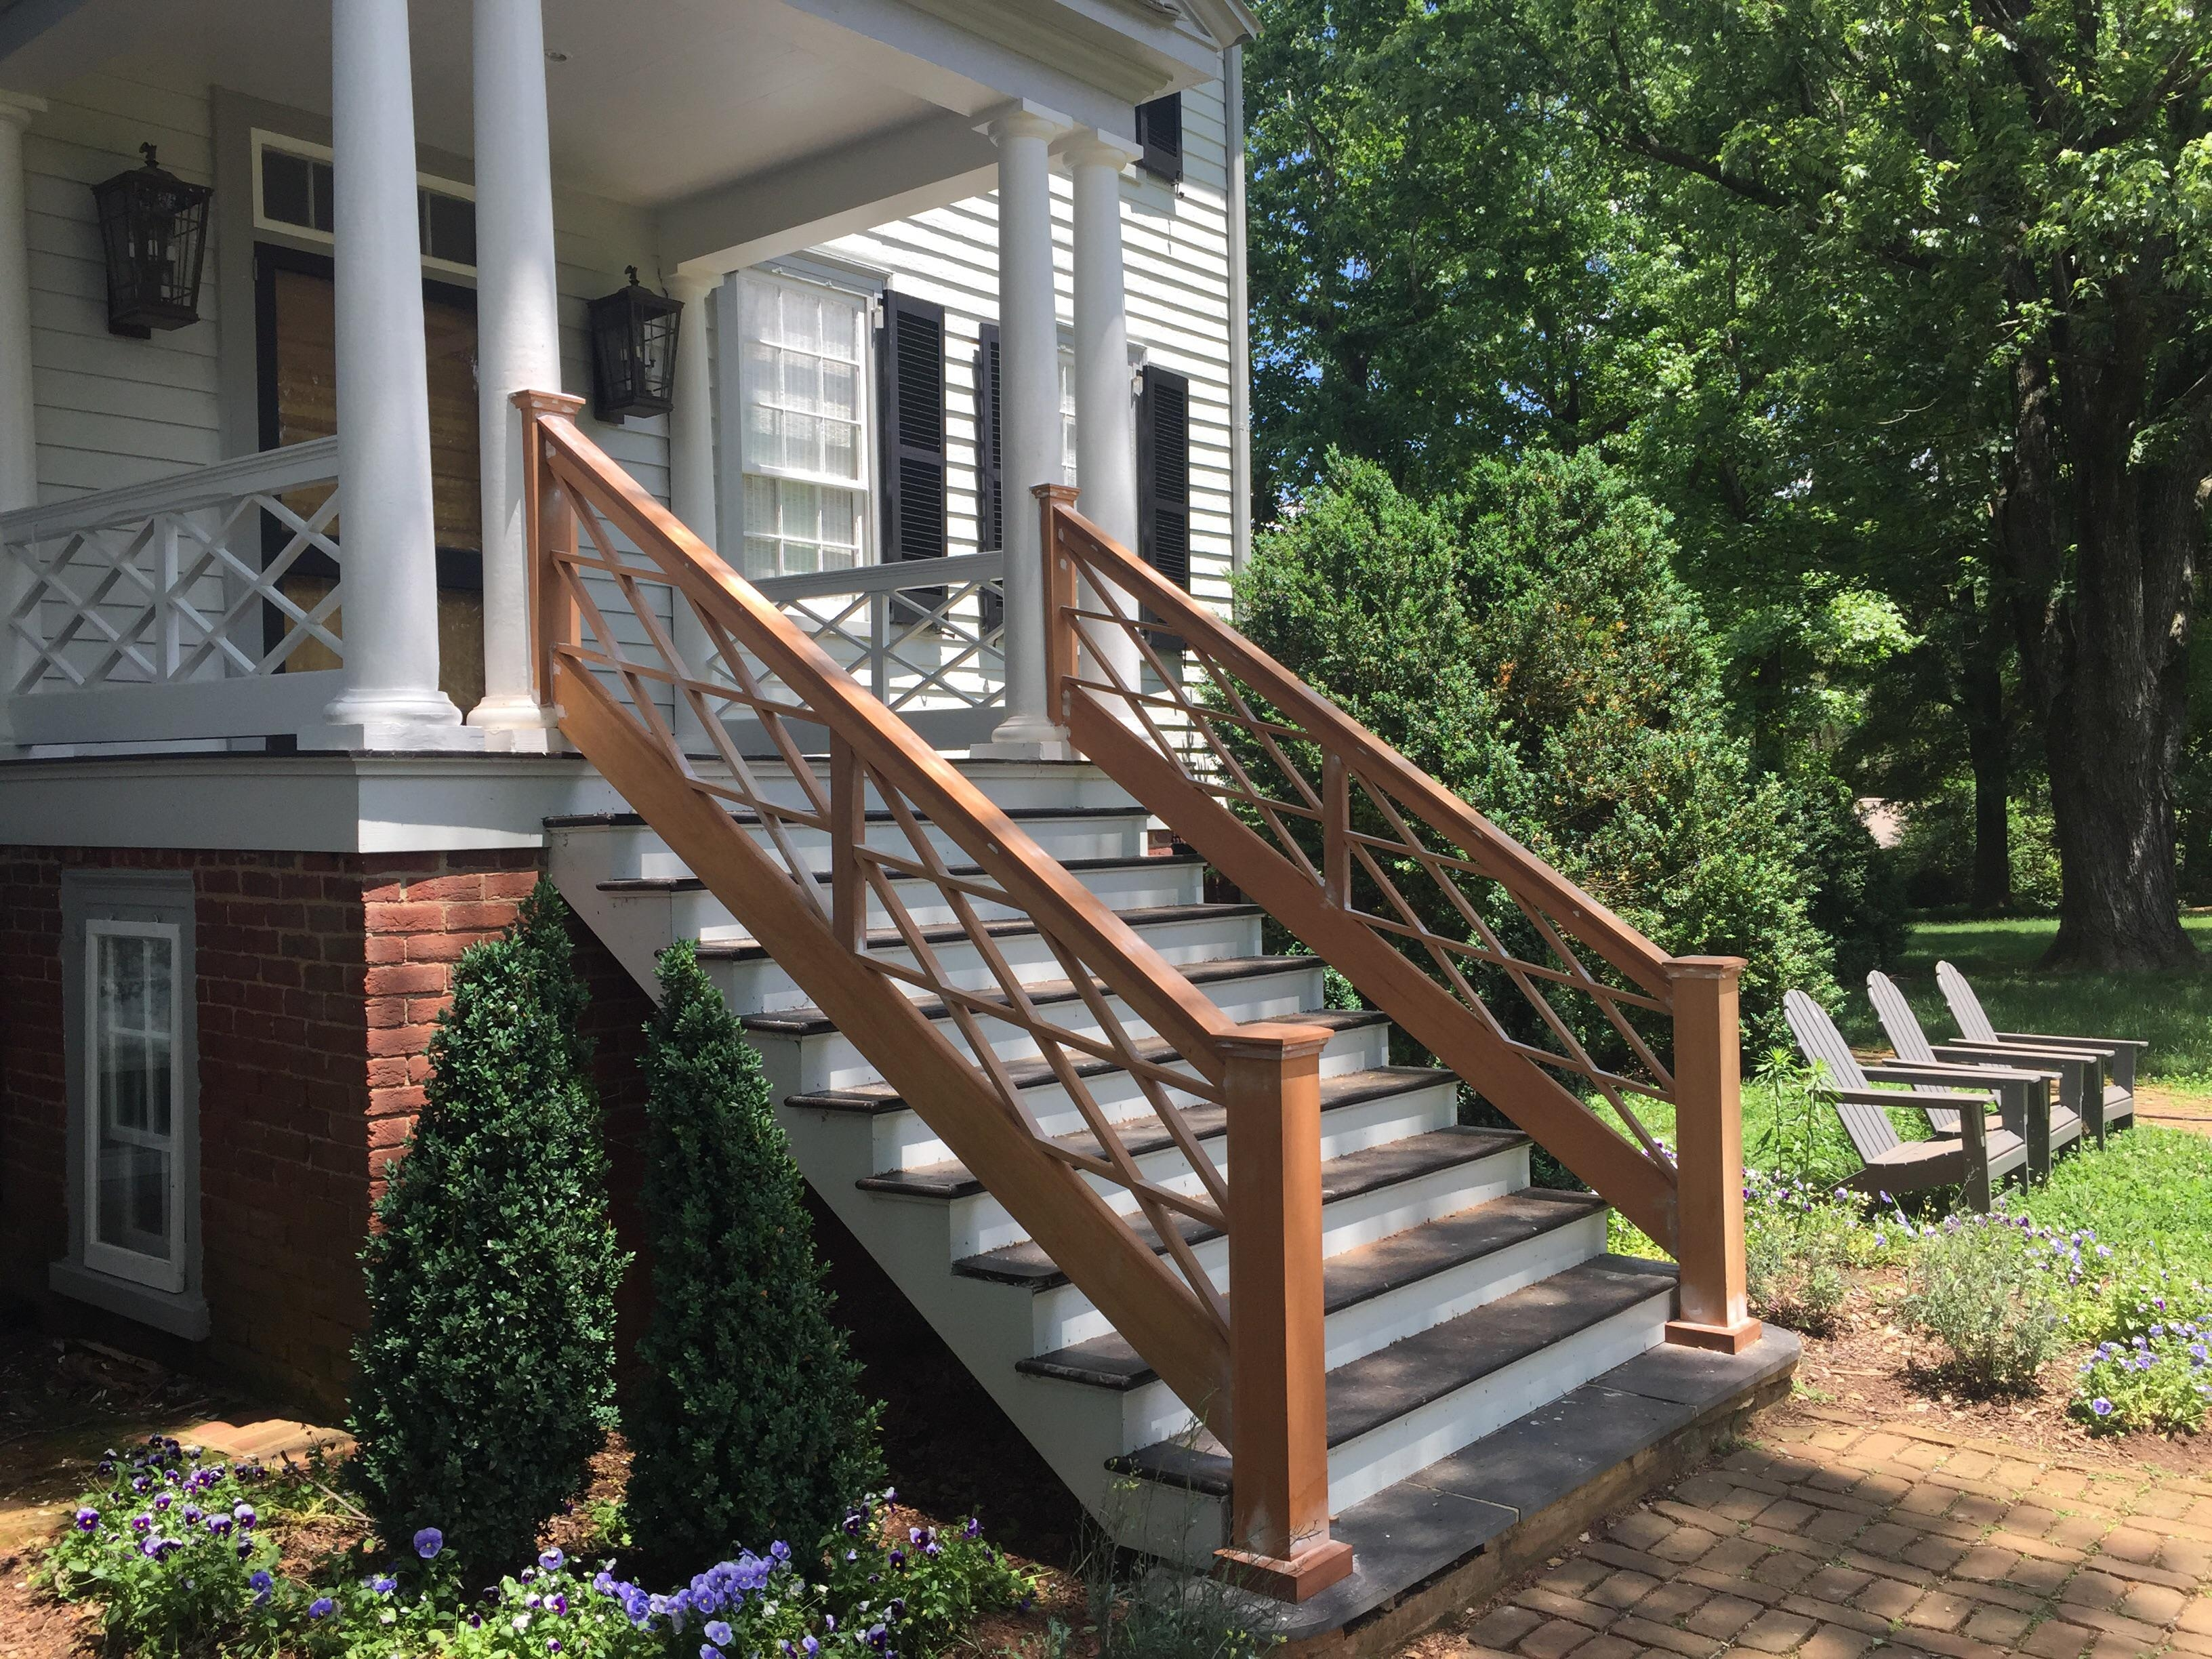 Mahogany Stair Rail That I Made Last Week Woodworking | Knotty Alder Stair Railing | Distressed | Diy | Interior | Indoor | Wood